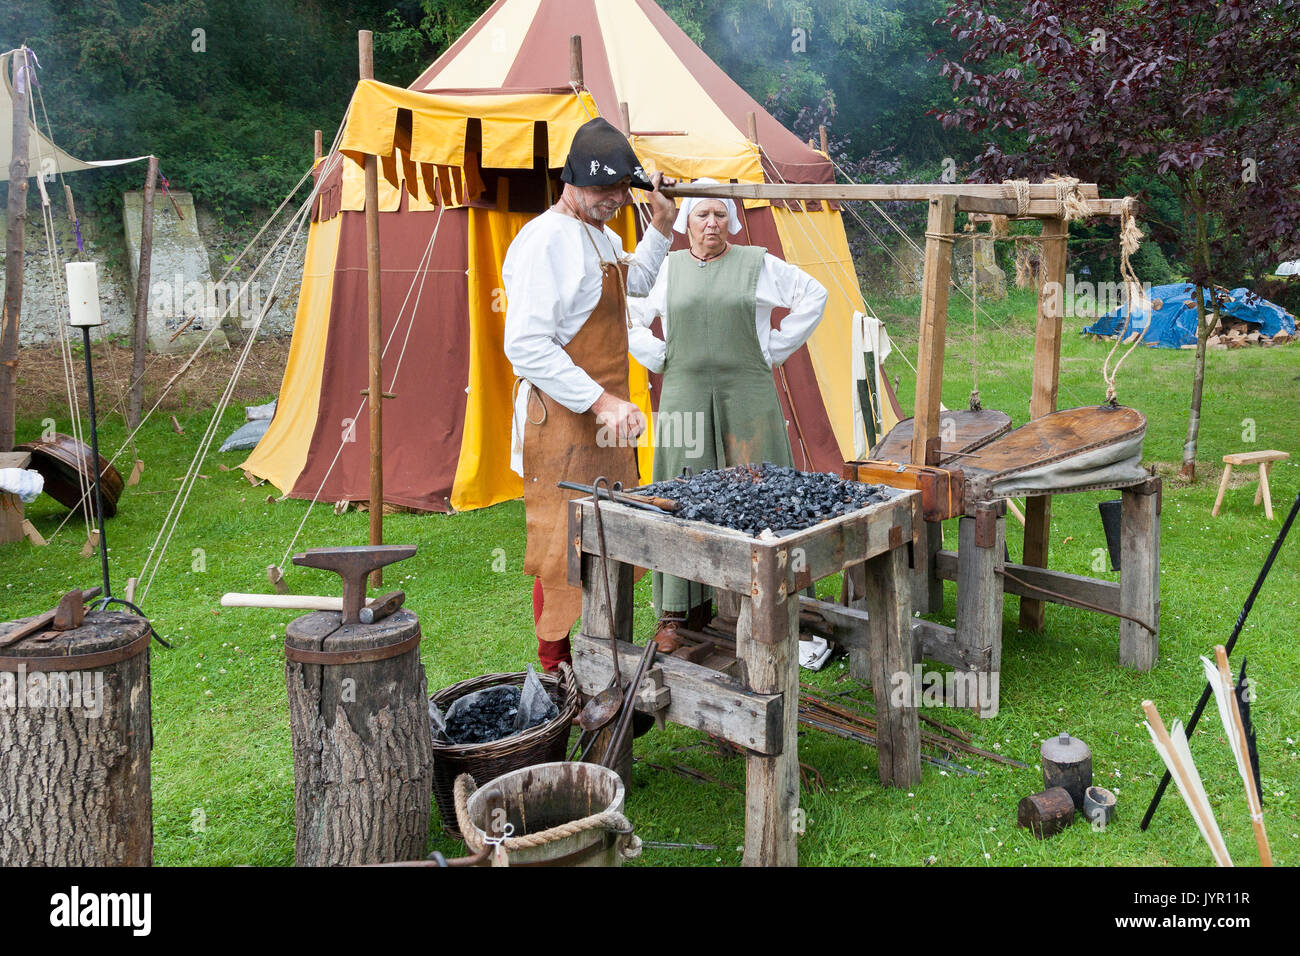 A demonstration of traditional Blacksmith tools - Stock Image